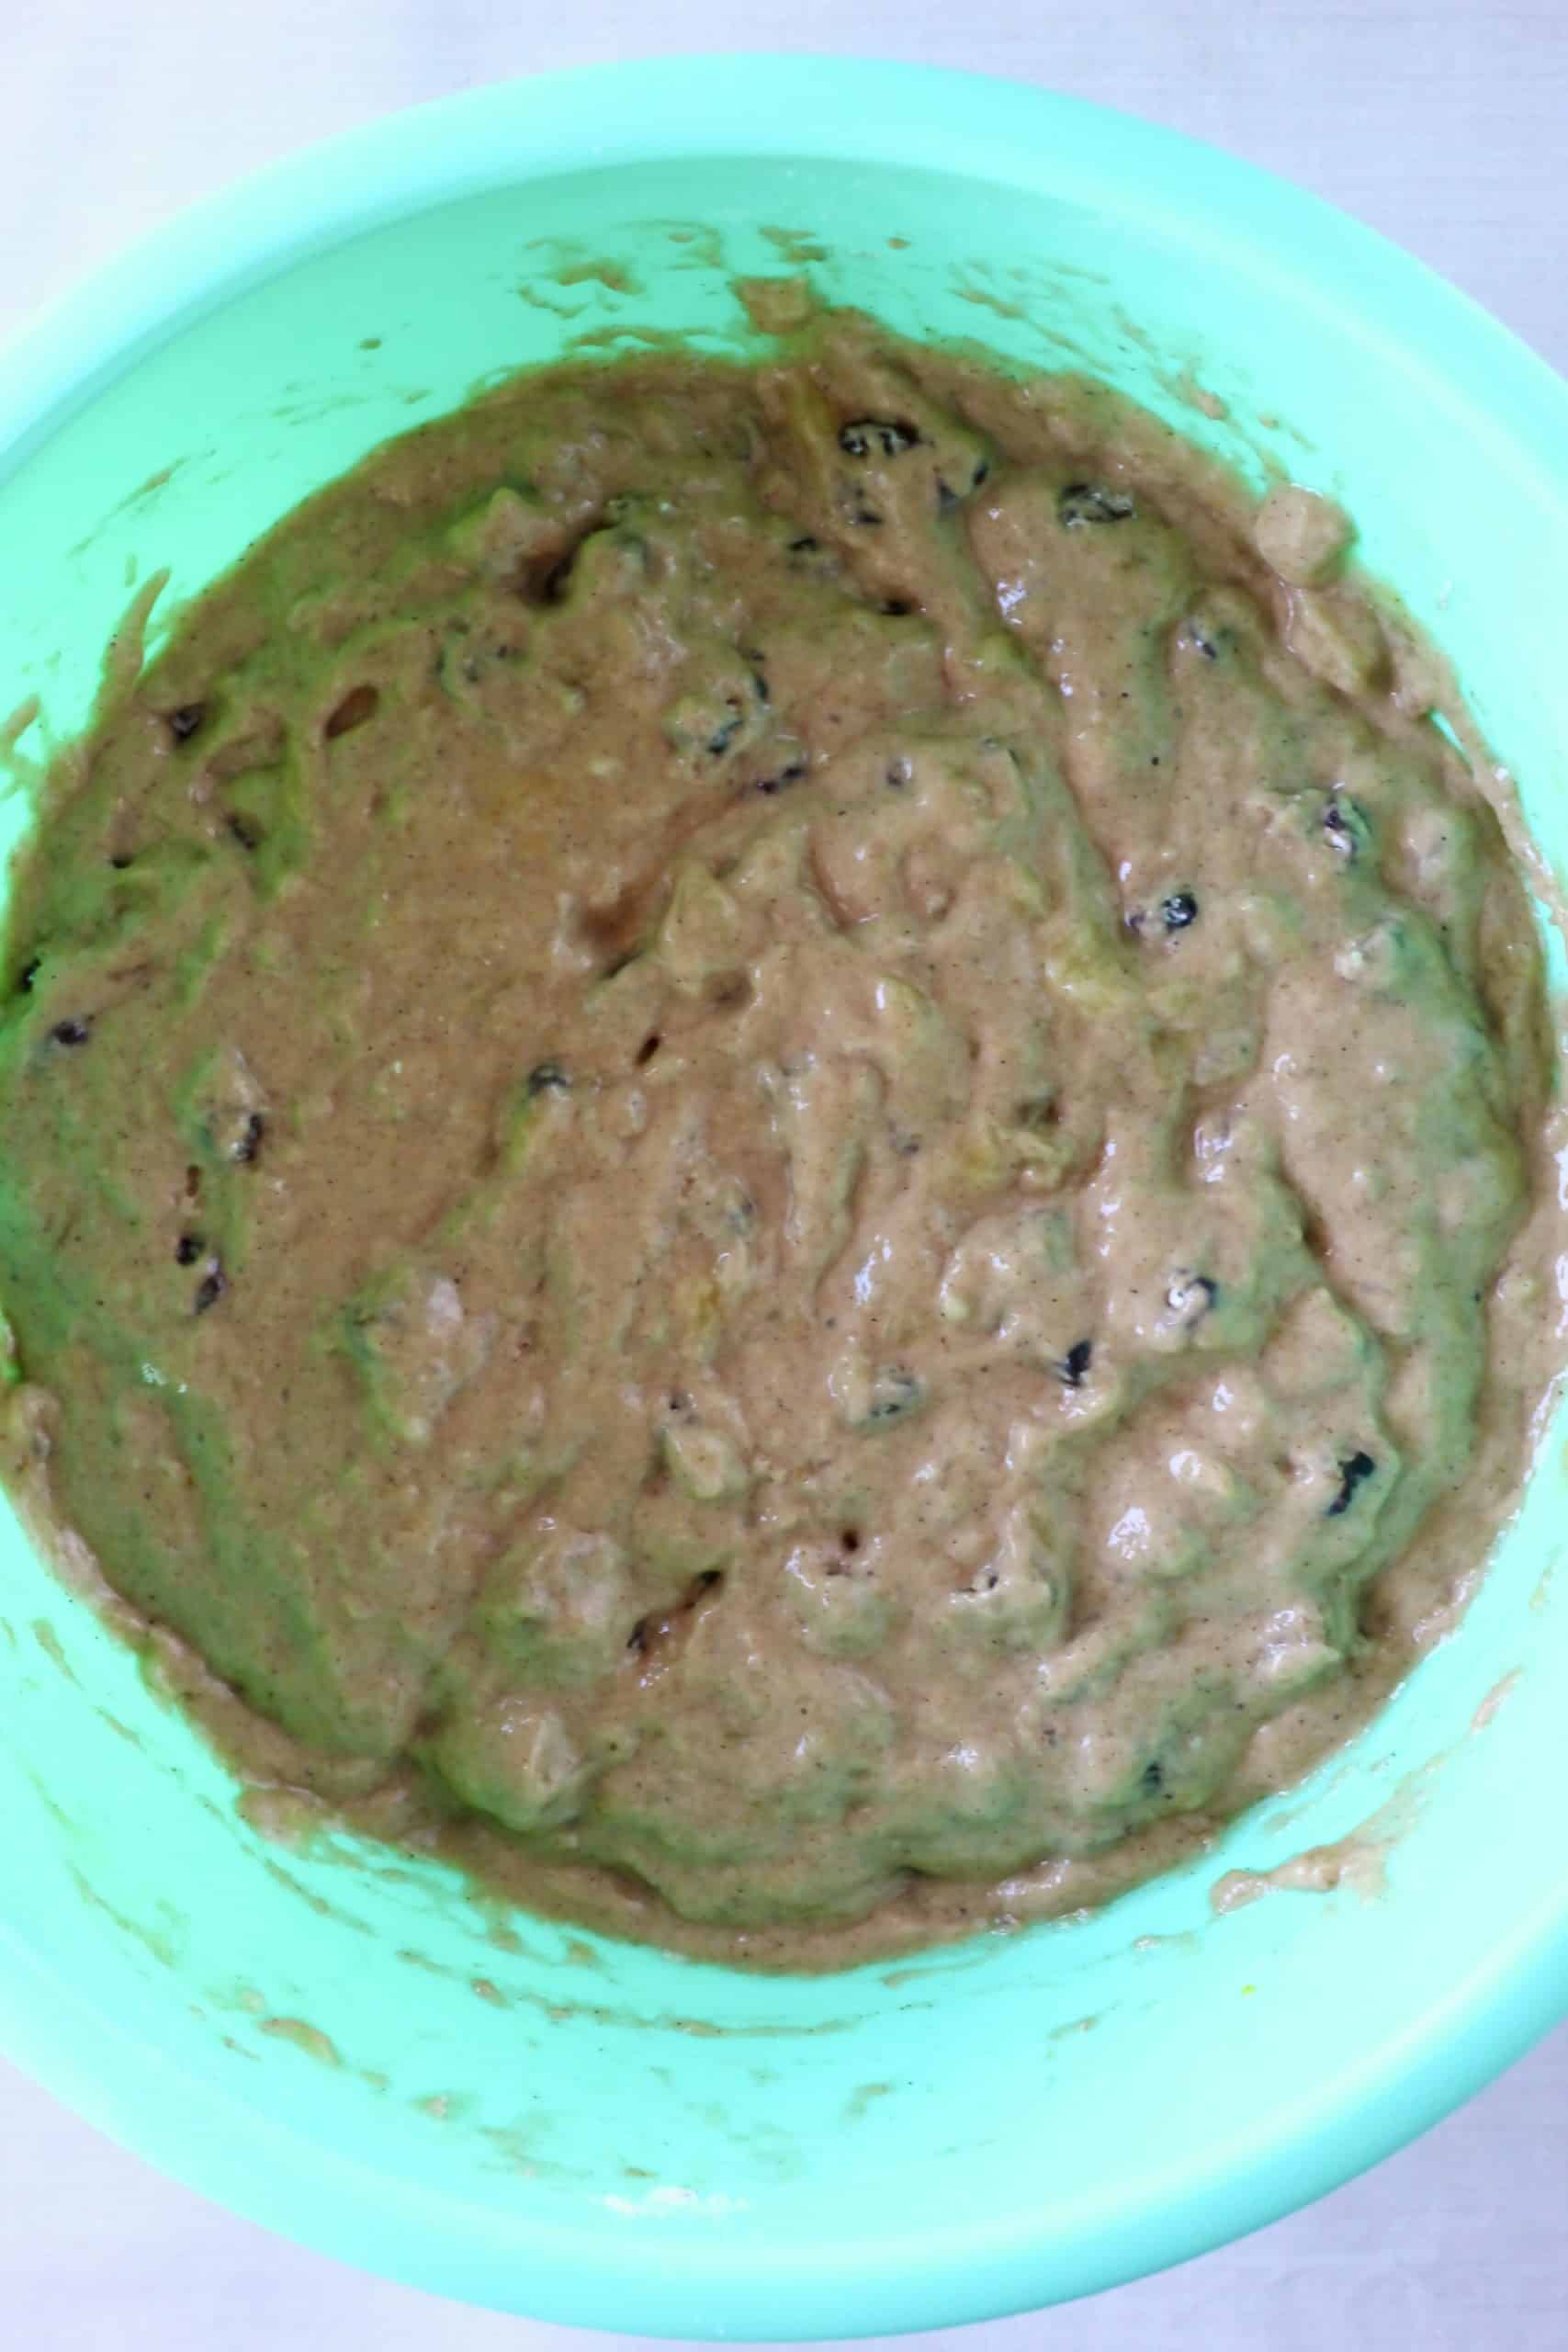 Raw gluten-free vegan banana cake batter with raisins in a mixing bowl